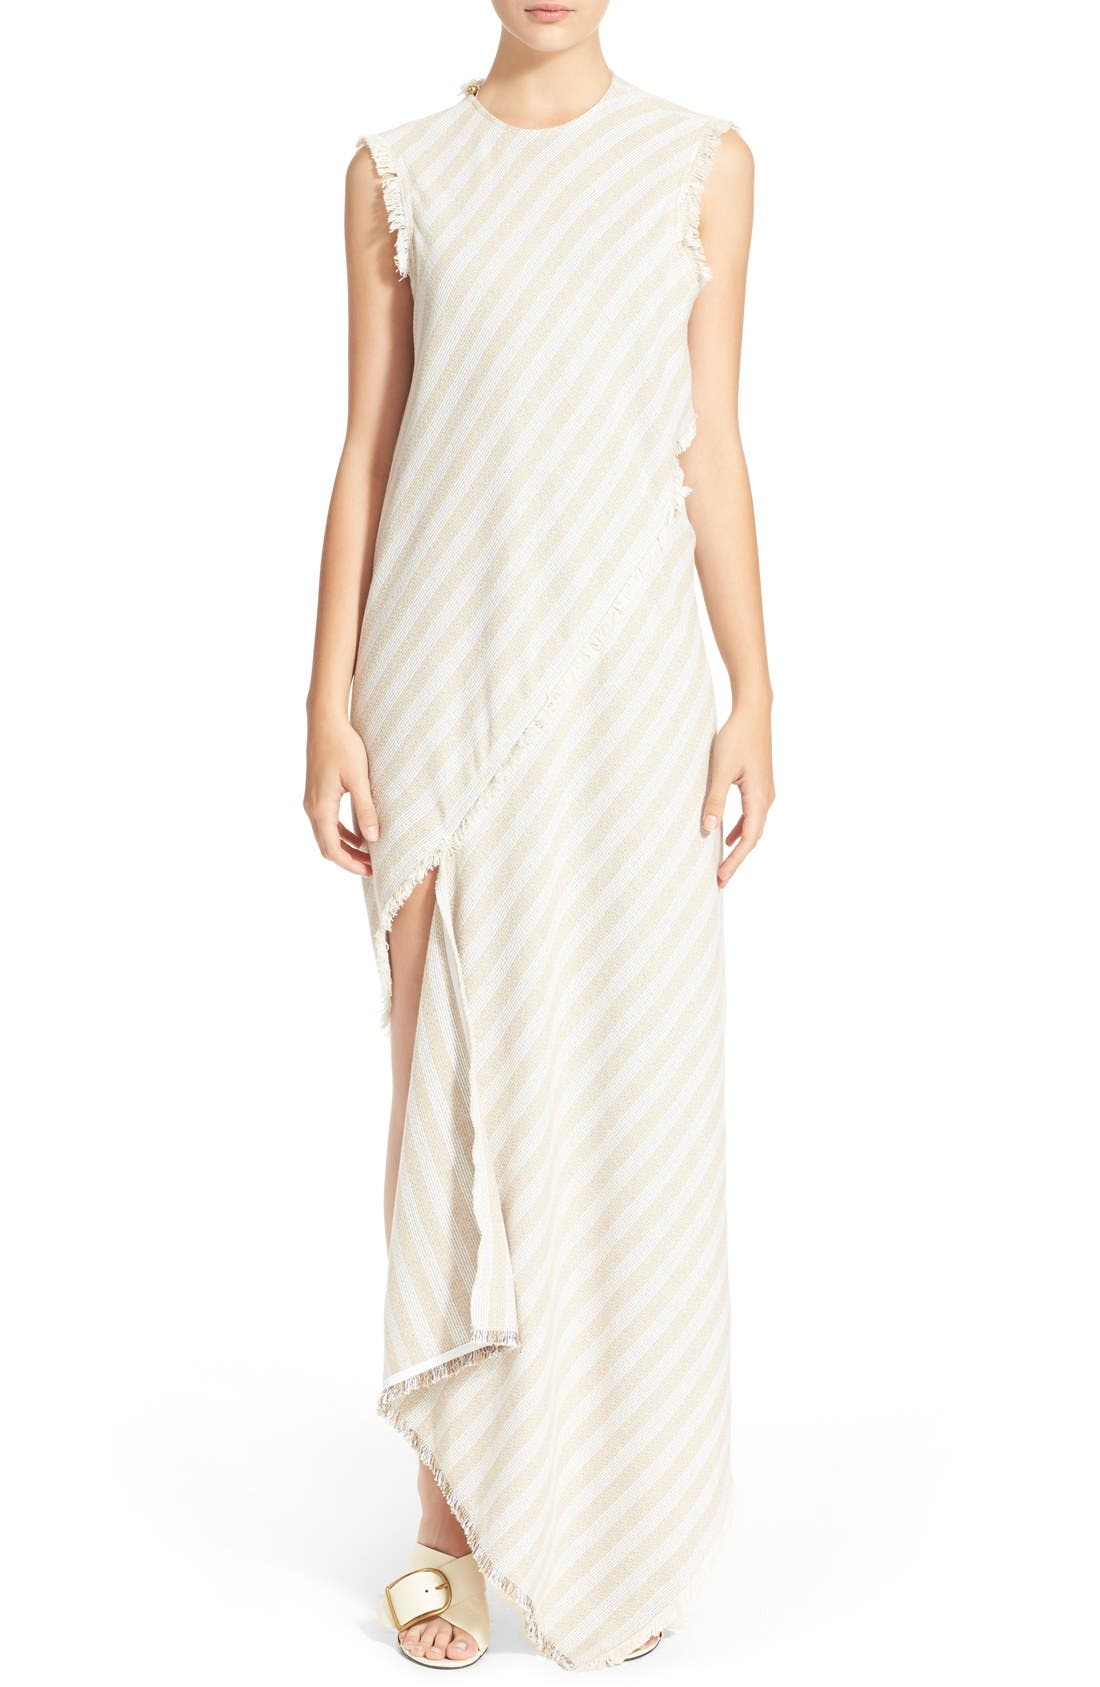 ACNE STUDIOS 'Cosby' Stripe Sleeveless Dress, Main, color, 270